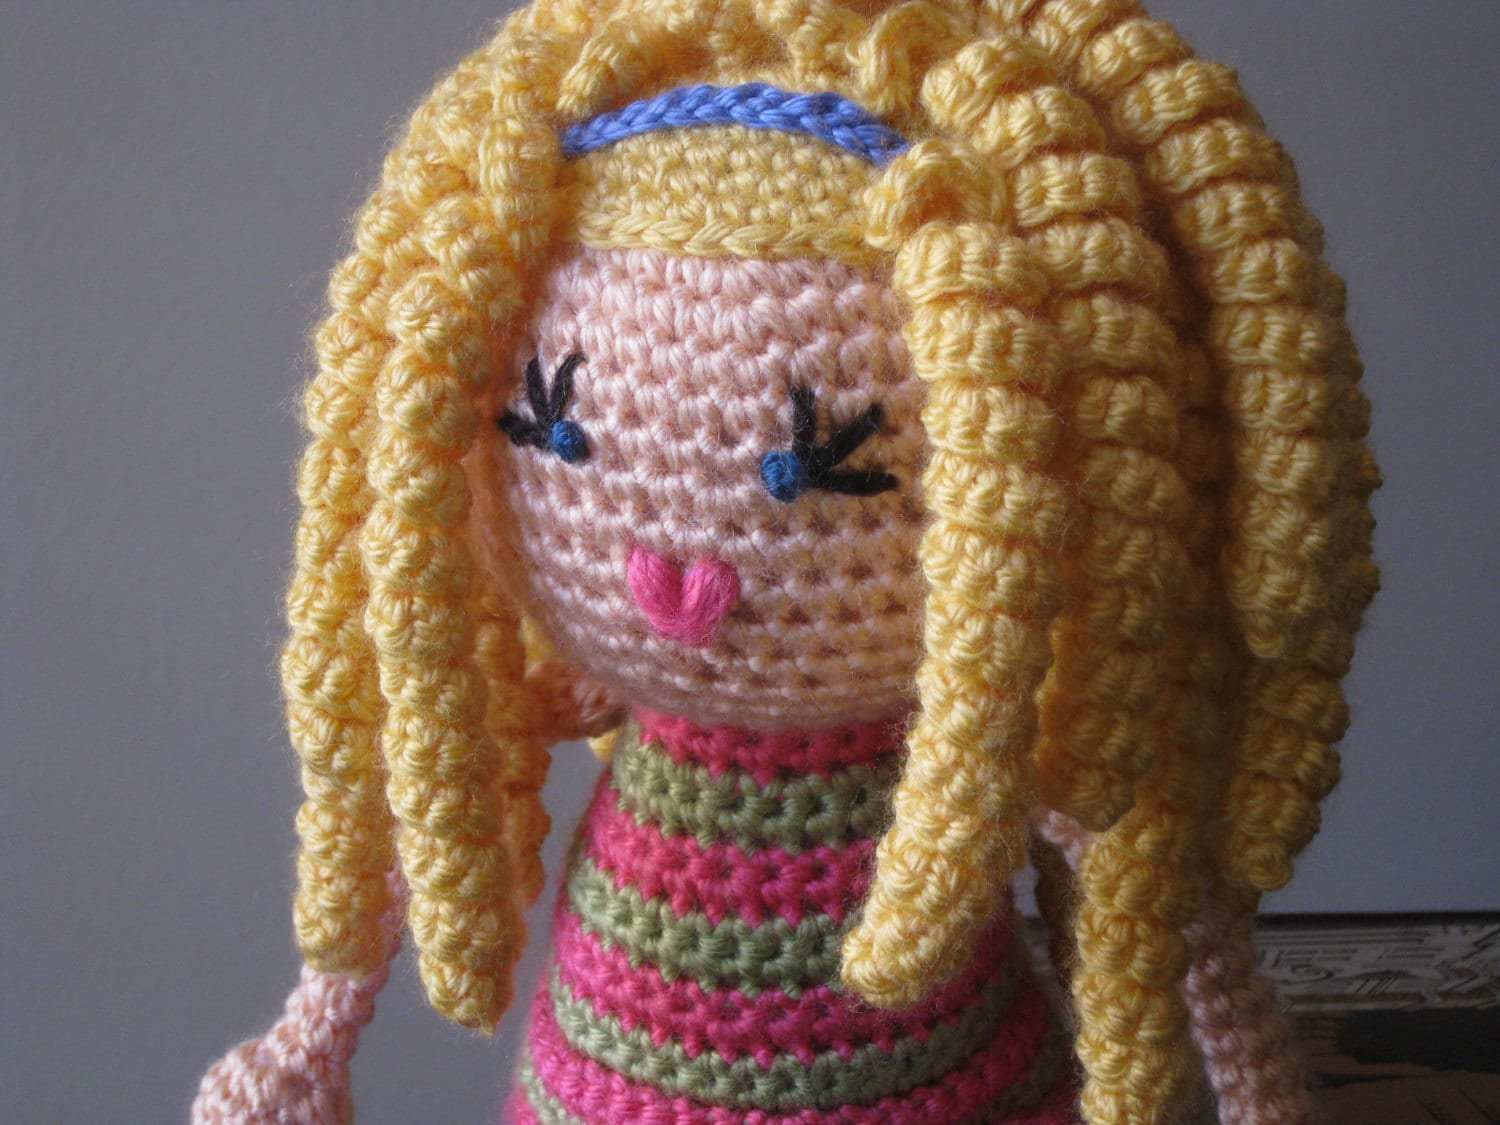 Crochet Hair On Dolls : Crochet Plush Vegan Doll Blonde Curls Curly by LeenGreenBean